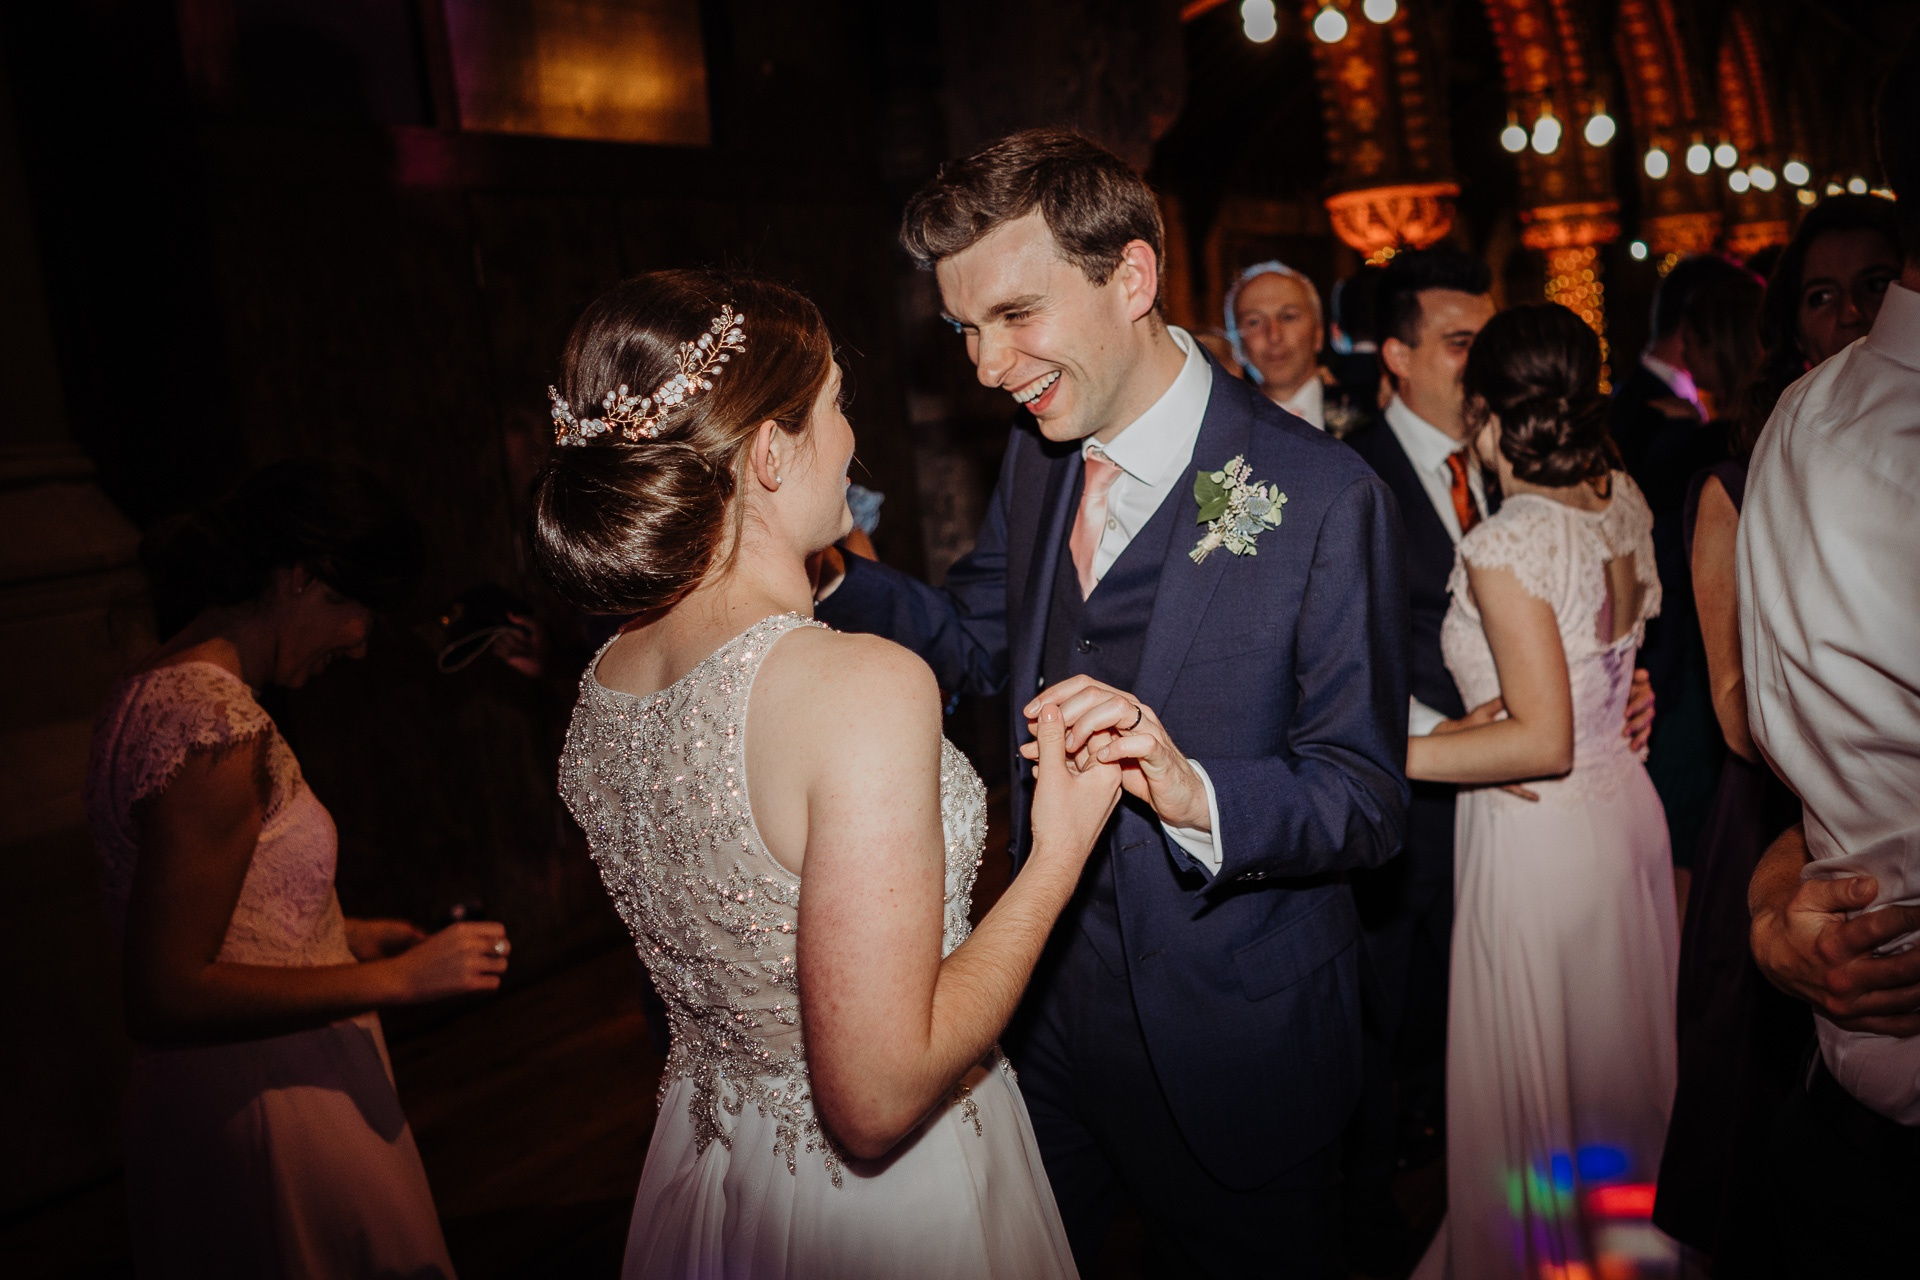 st-stephens-hampstead-wedding-photographer-038